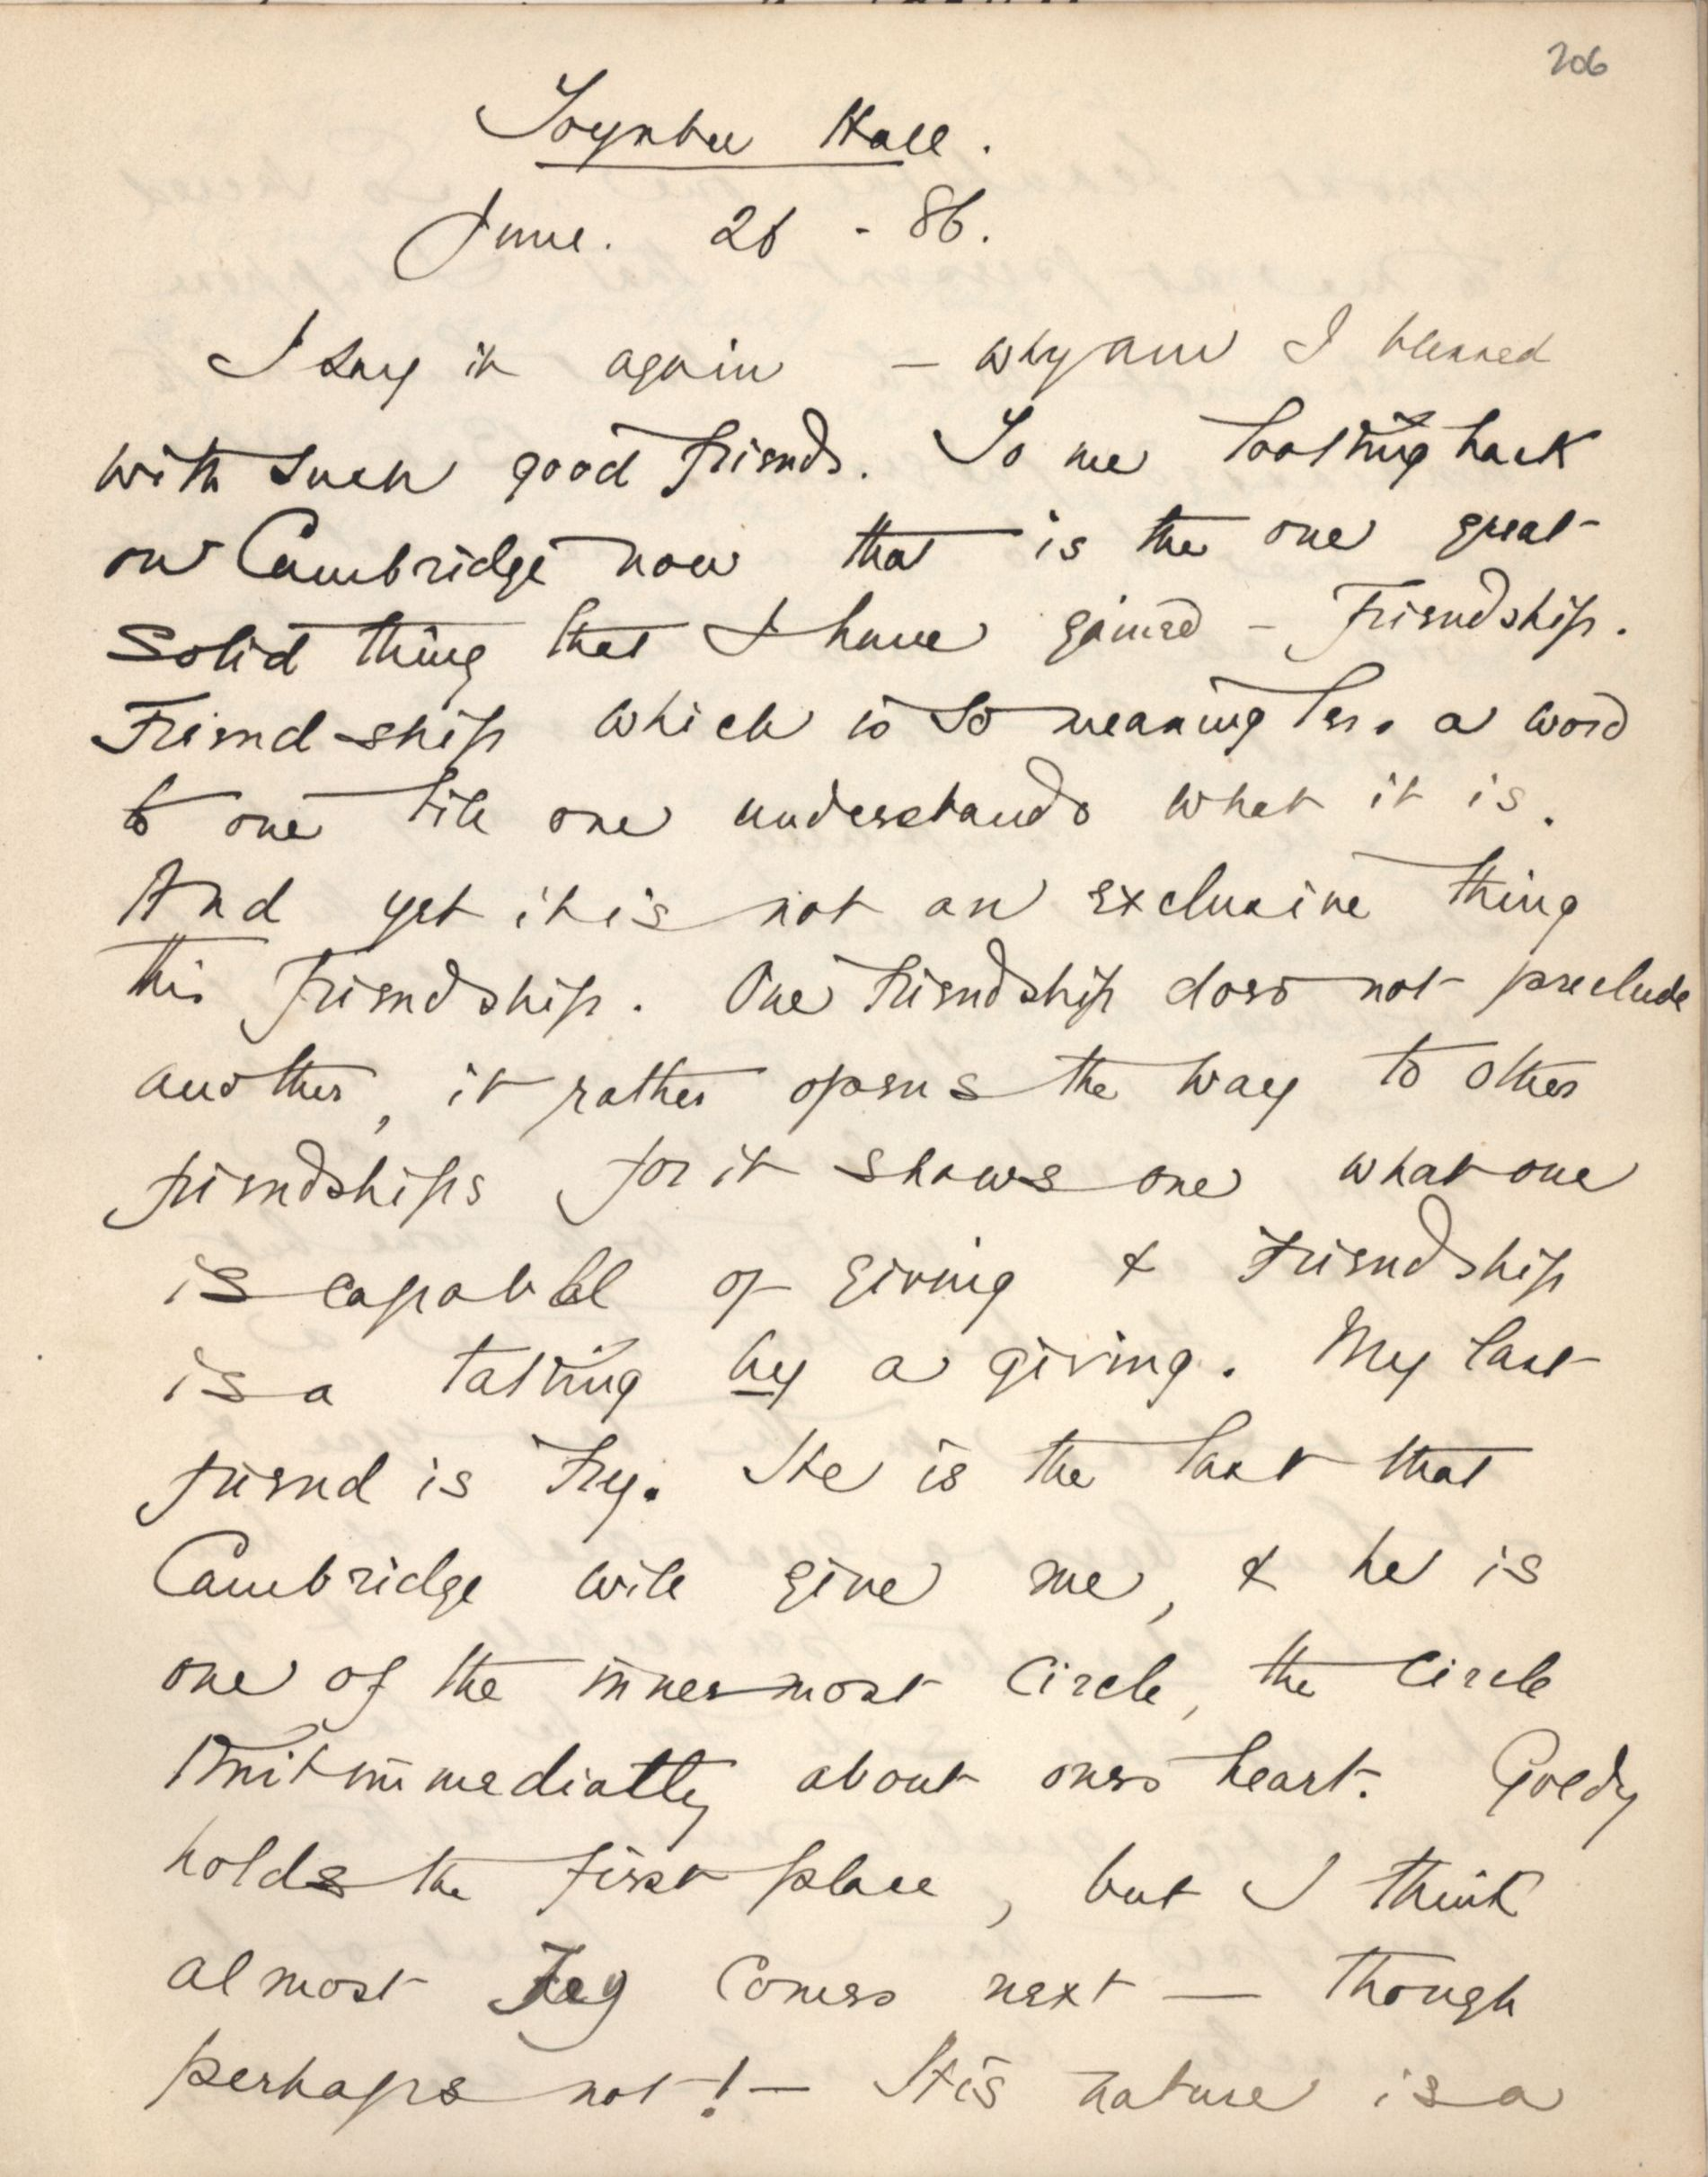 Ashbee's journal entry, 26 June 1886. [CRA/1/2, 206 recto]